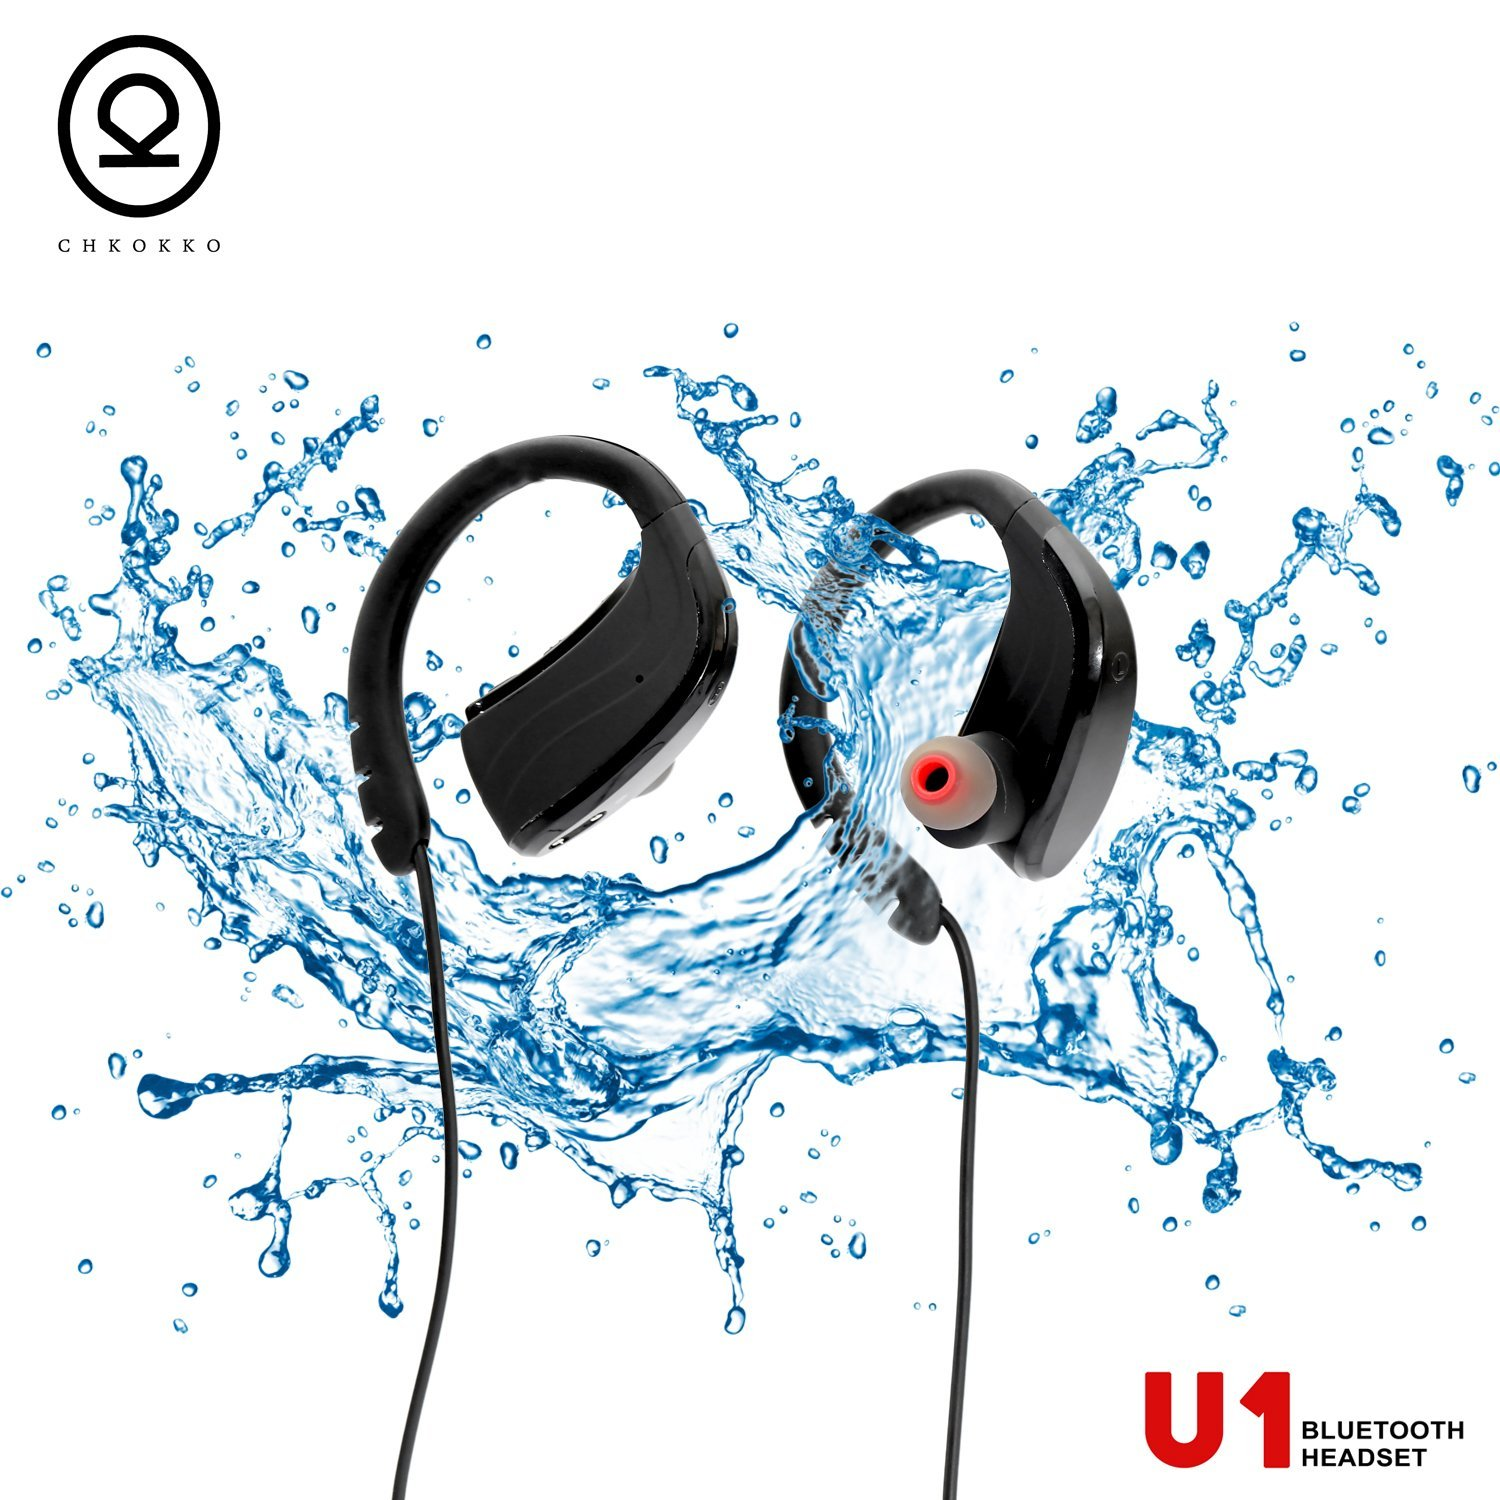 CHKOKKO U1 Bluetooth Headphones, Best Wireless Sports Earphones with Mic, IPX7 Waterproof Technology, HD Sound with Bass, Noise Cancelling, up to 8 hours working time